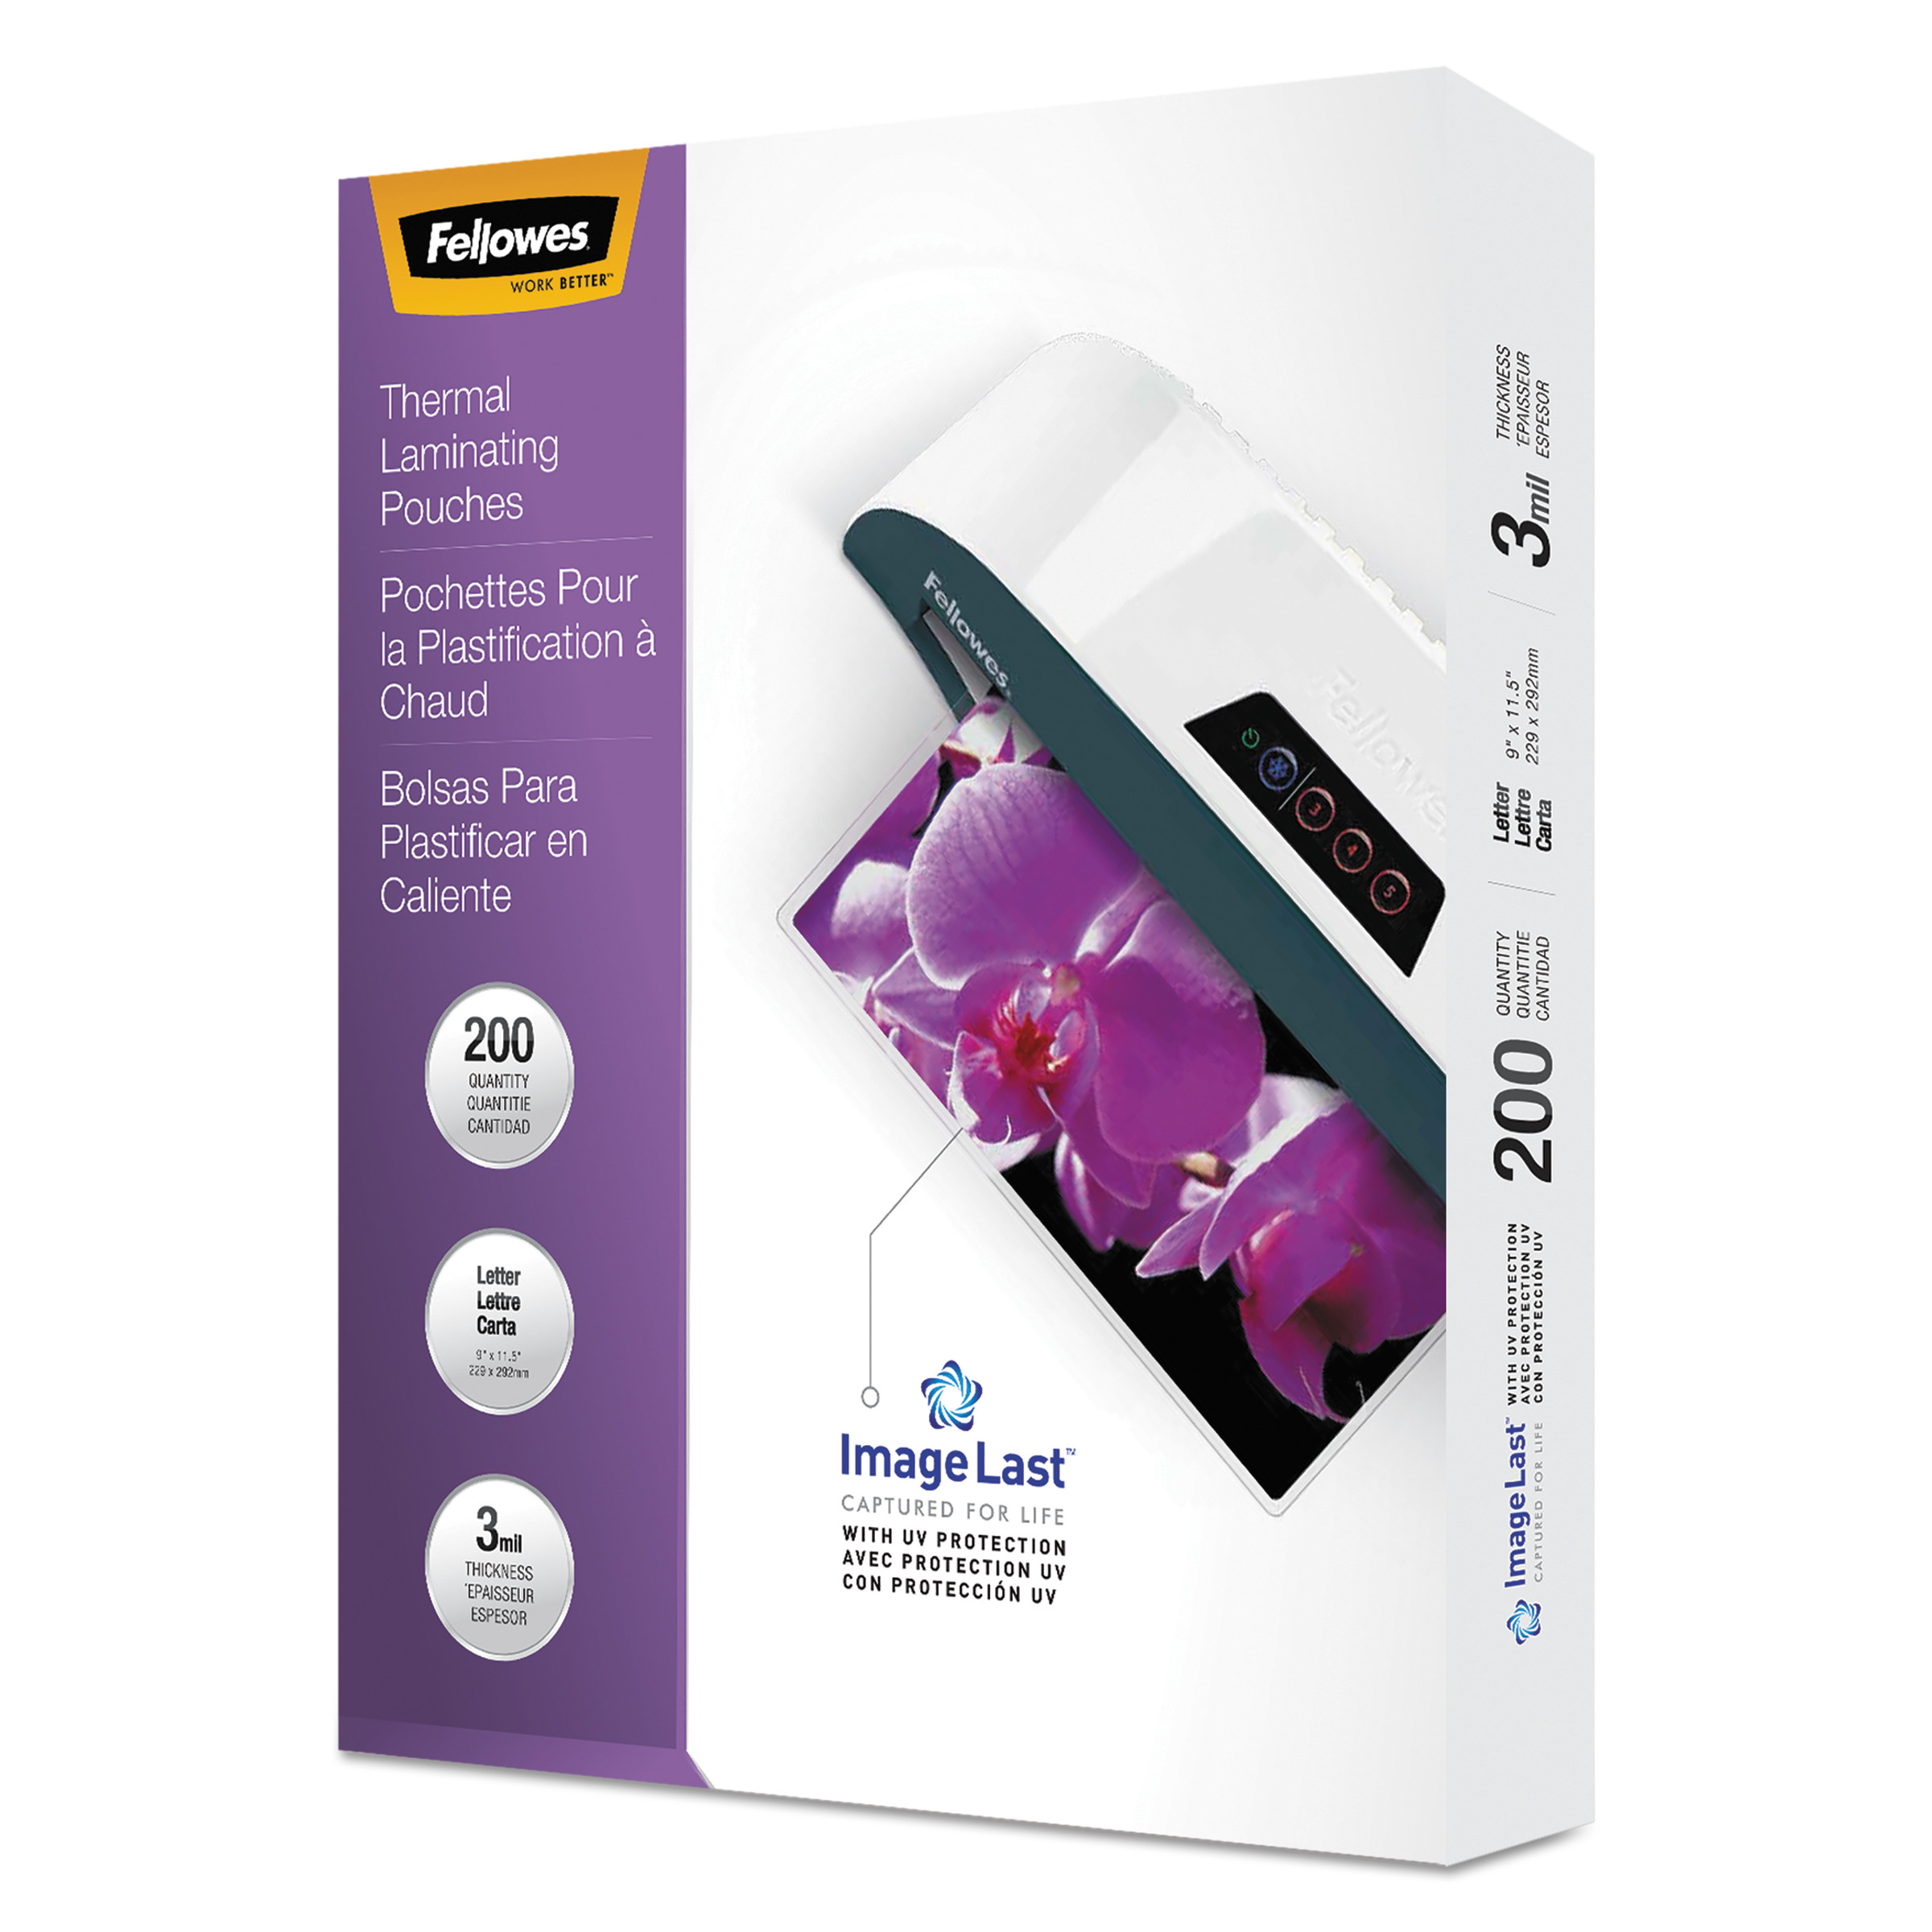 Fellowes ImageLast Laminating Pouches with UV Protection, 3mil, 11 1/2 x 9, 200/Pack